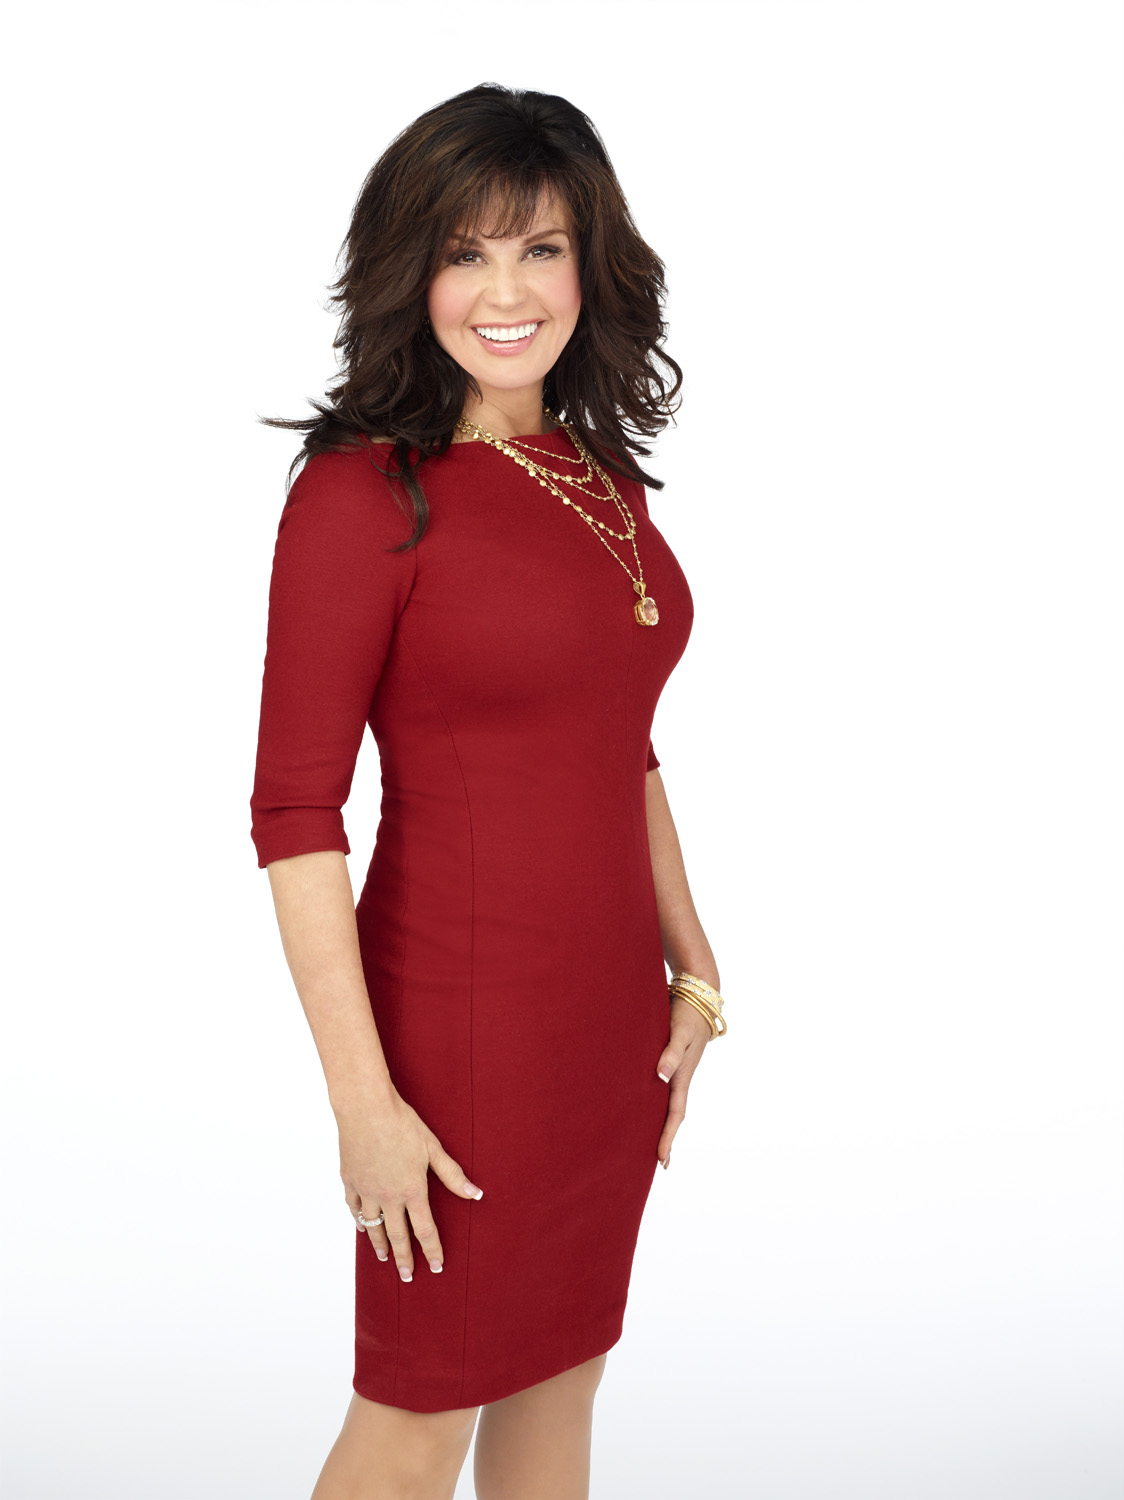 Entertainer Marie Osmond American Profile